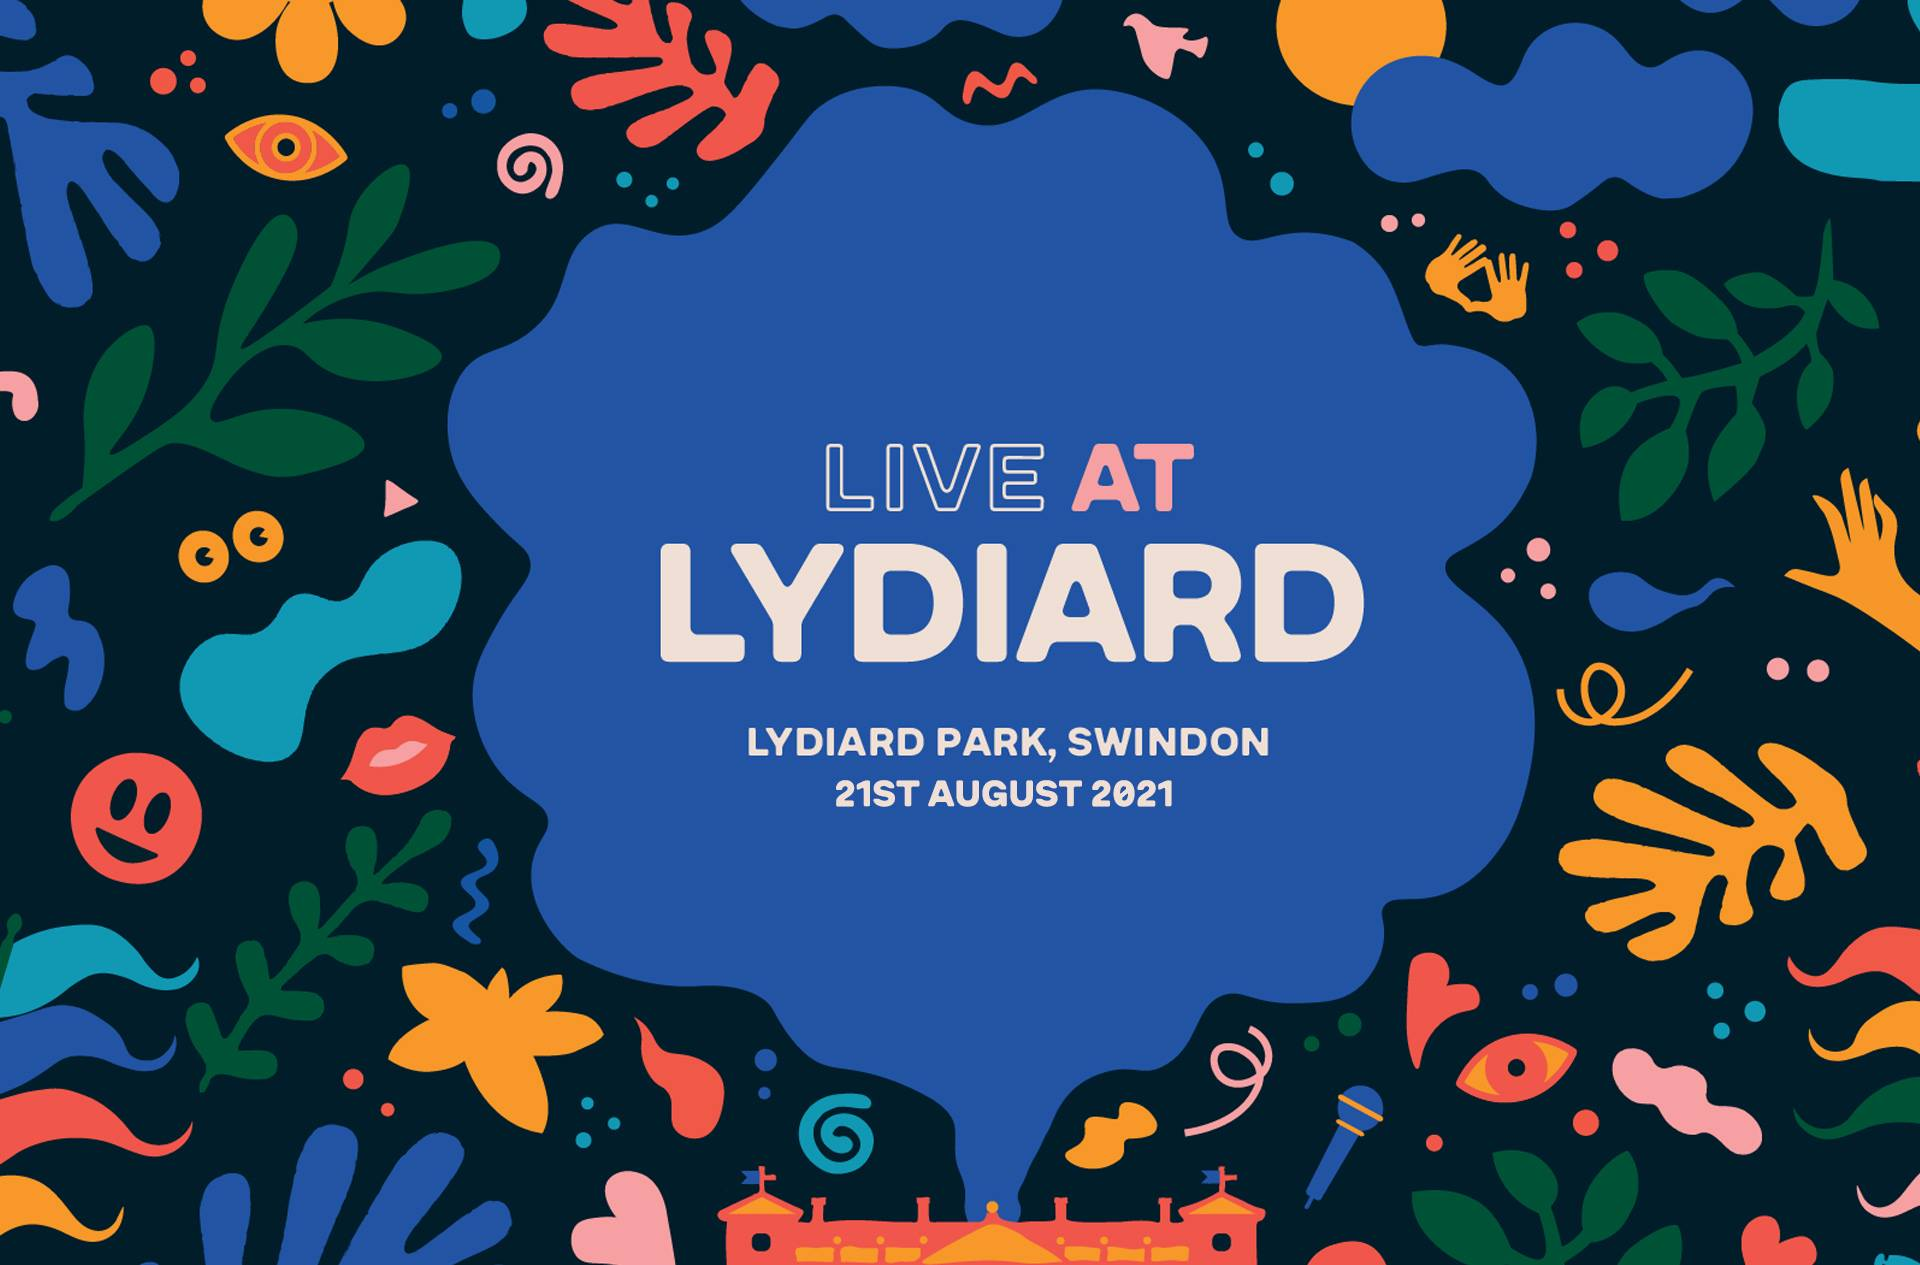 Live at Lydiard 2021